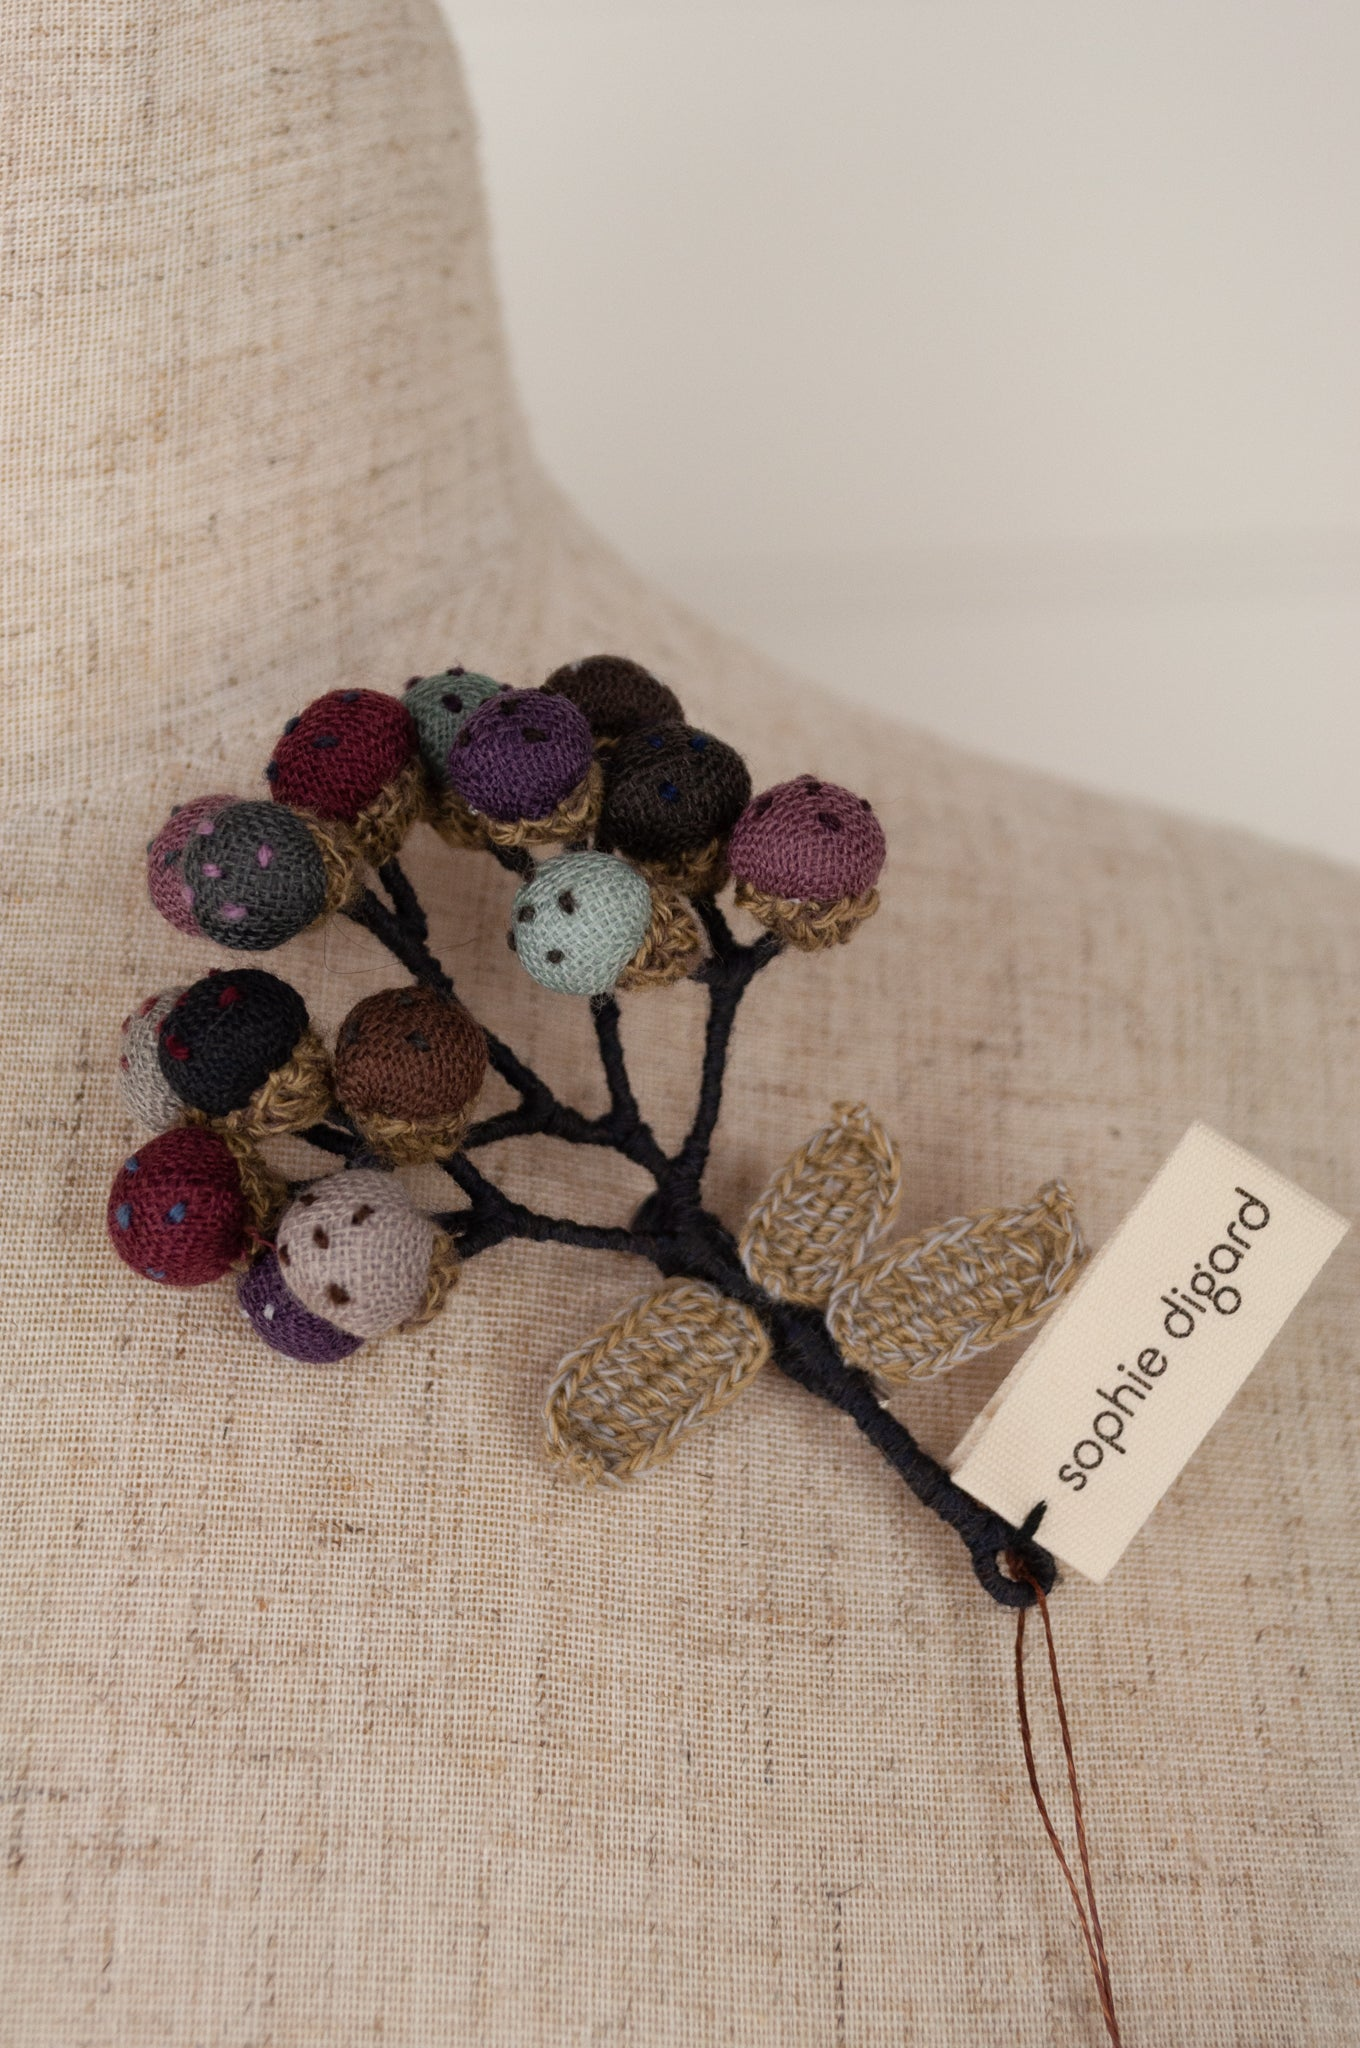 Sophie Digard Bulbs brooch, embroidered linen and wool in a muted winter palette of navy, grey, purple, burgundy, aqua and taupe.